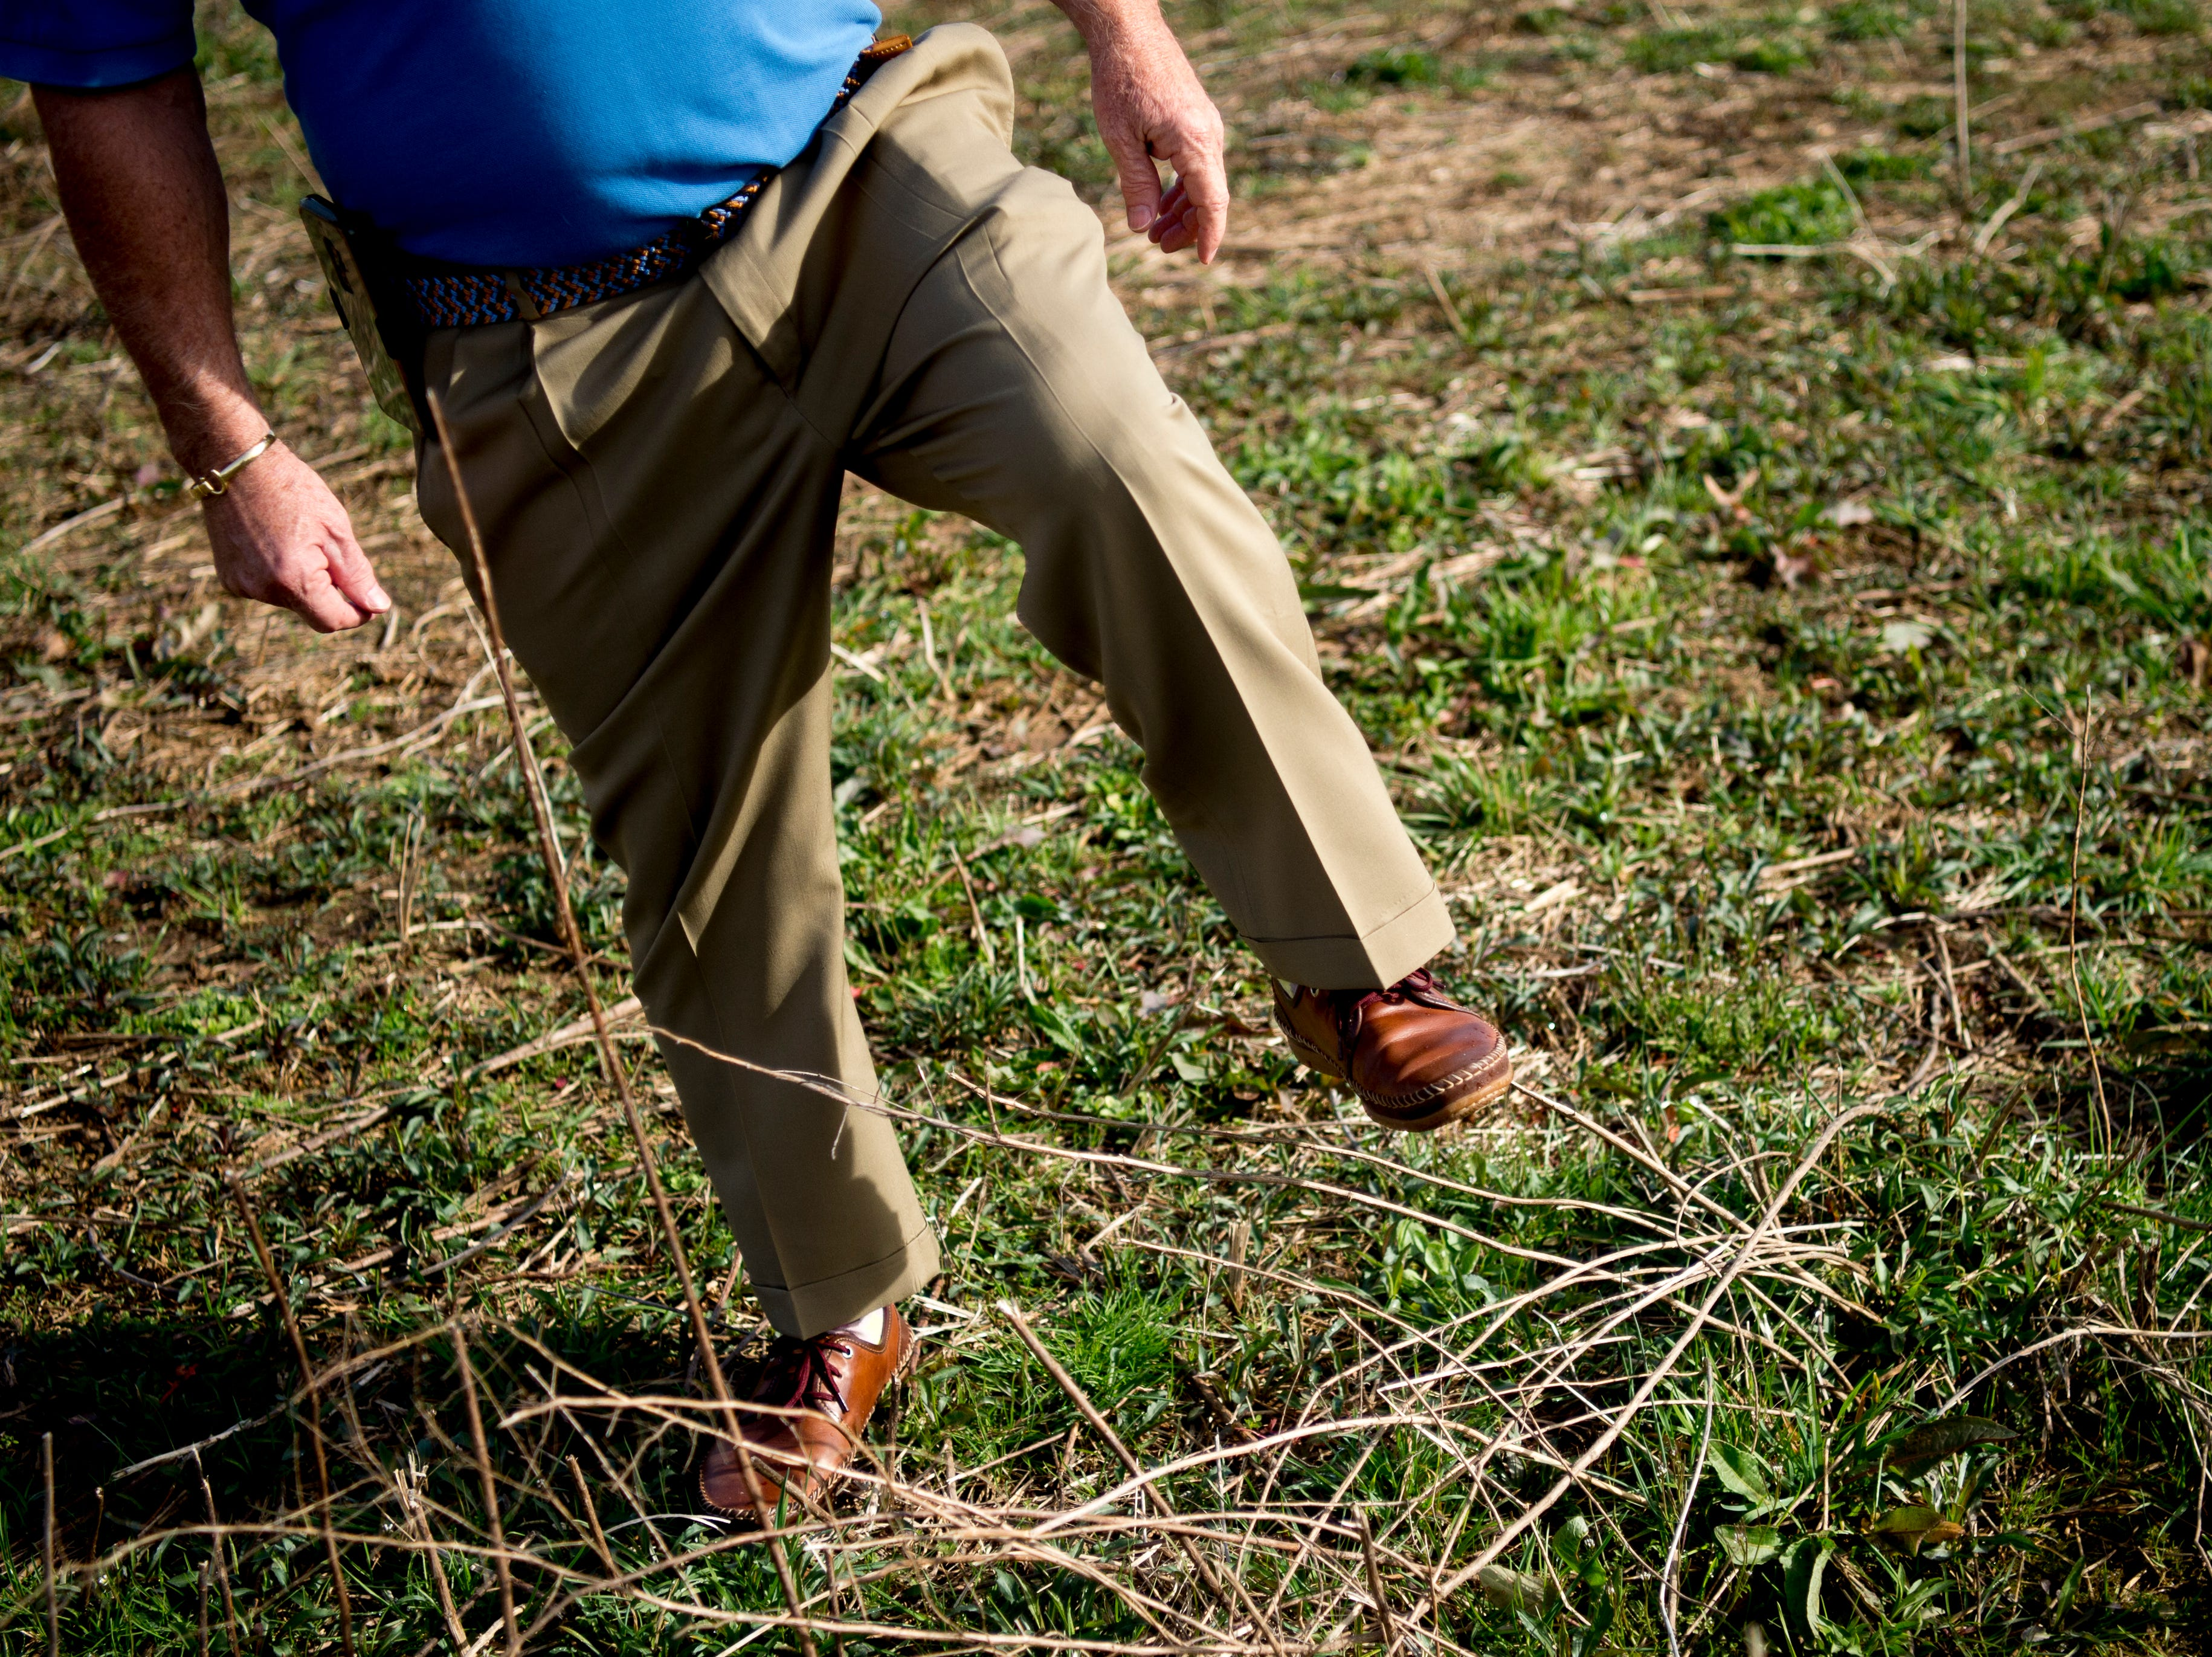 Joe Hollingsworth, president of the Hollingsworth Foundation, steps over some overgrowth at the site of the future Aspire Park in Clinton, Tennessee on Tuesday, March 12, 2019. The Hollingsworth Foundation is looking to redevelop nearly 450 acres of land off Yarnell Road into a recreational park.